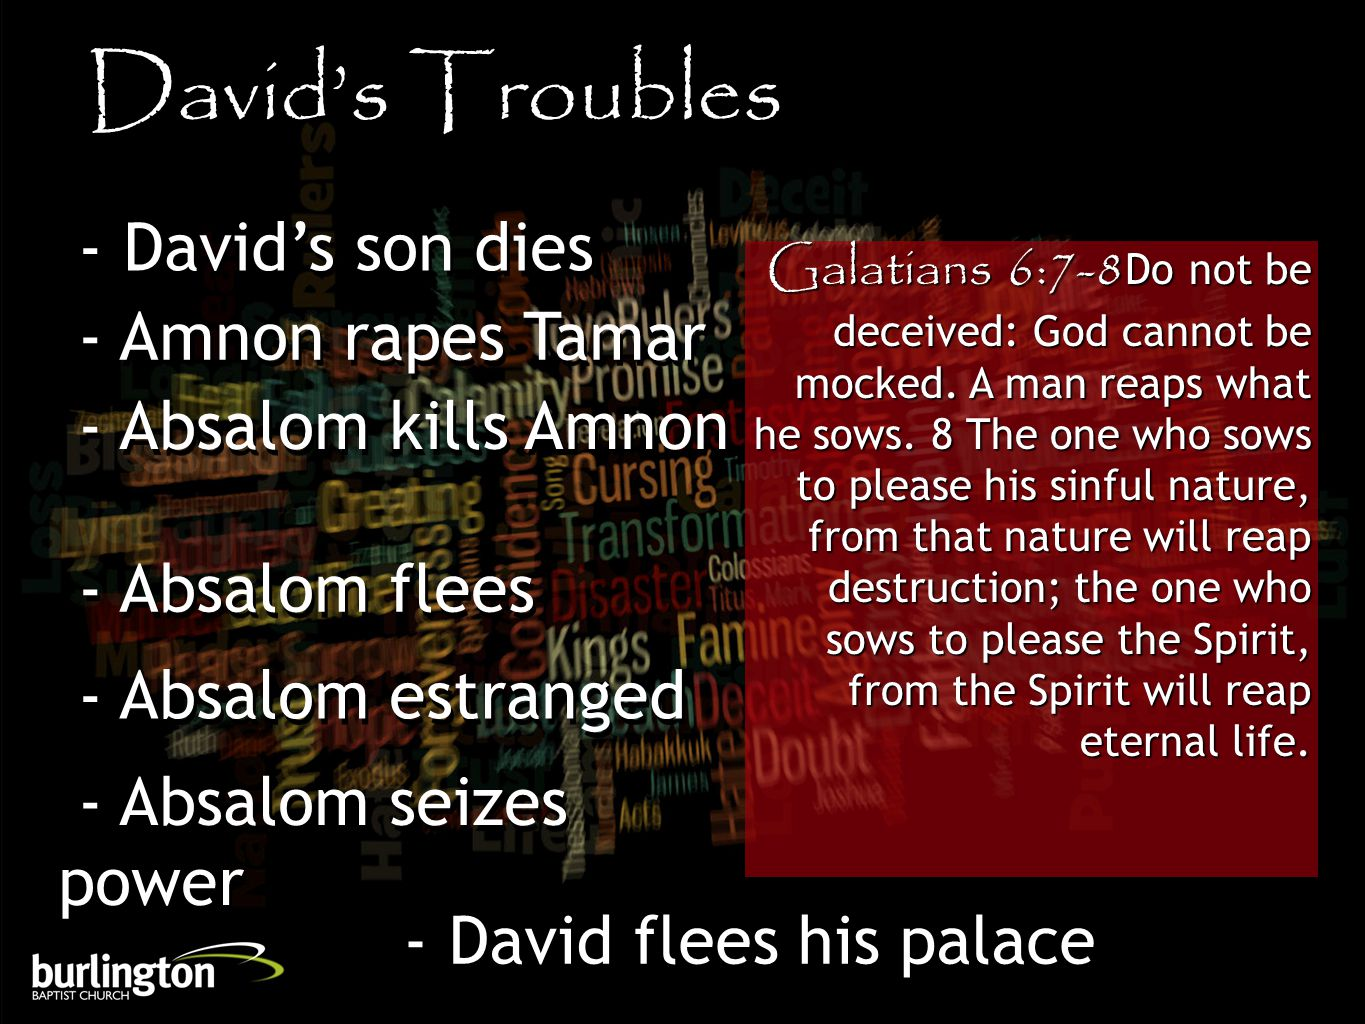 David's Troubles - David's son dies - Amnon rapes Tamar - Absalom kills Amnon - Absalom flees - Absalom estranged - Absalom seizes power - David flees